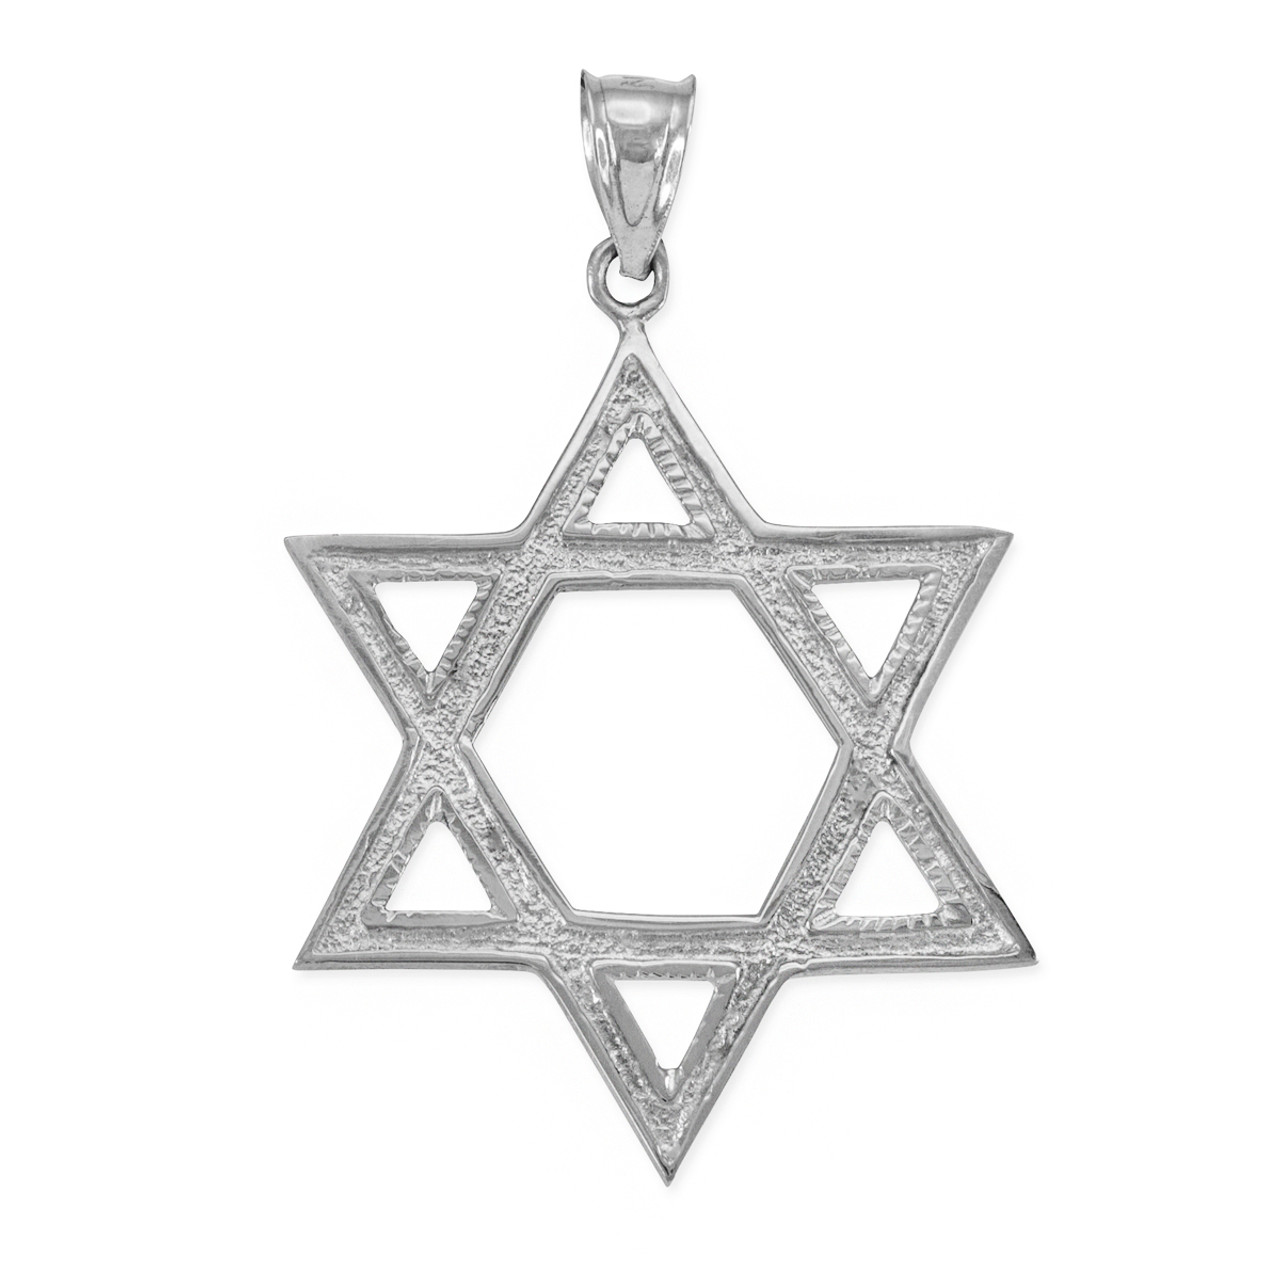 Silver star of david pendant 17 inches sterling silver star of david pendant 17 inches aloadofball Image collections